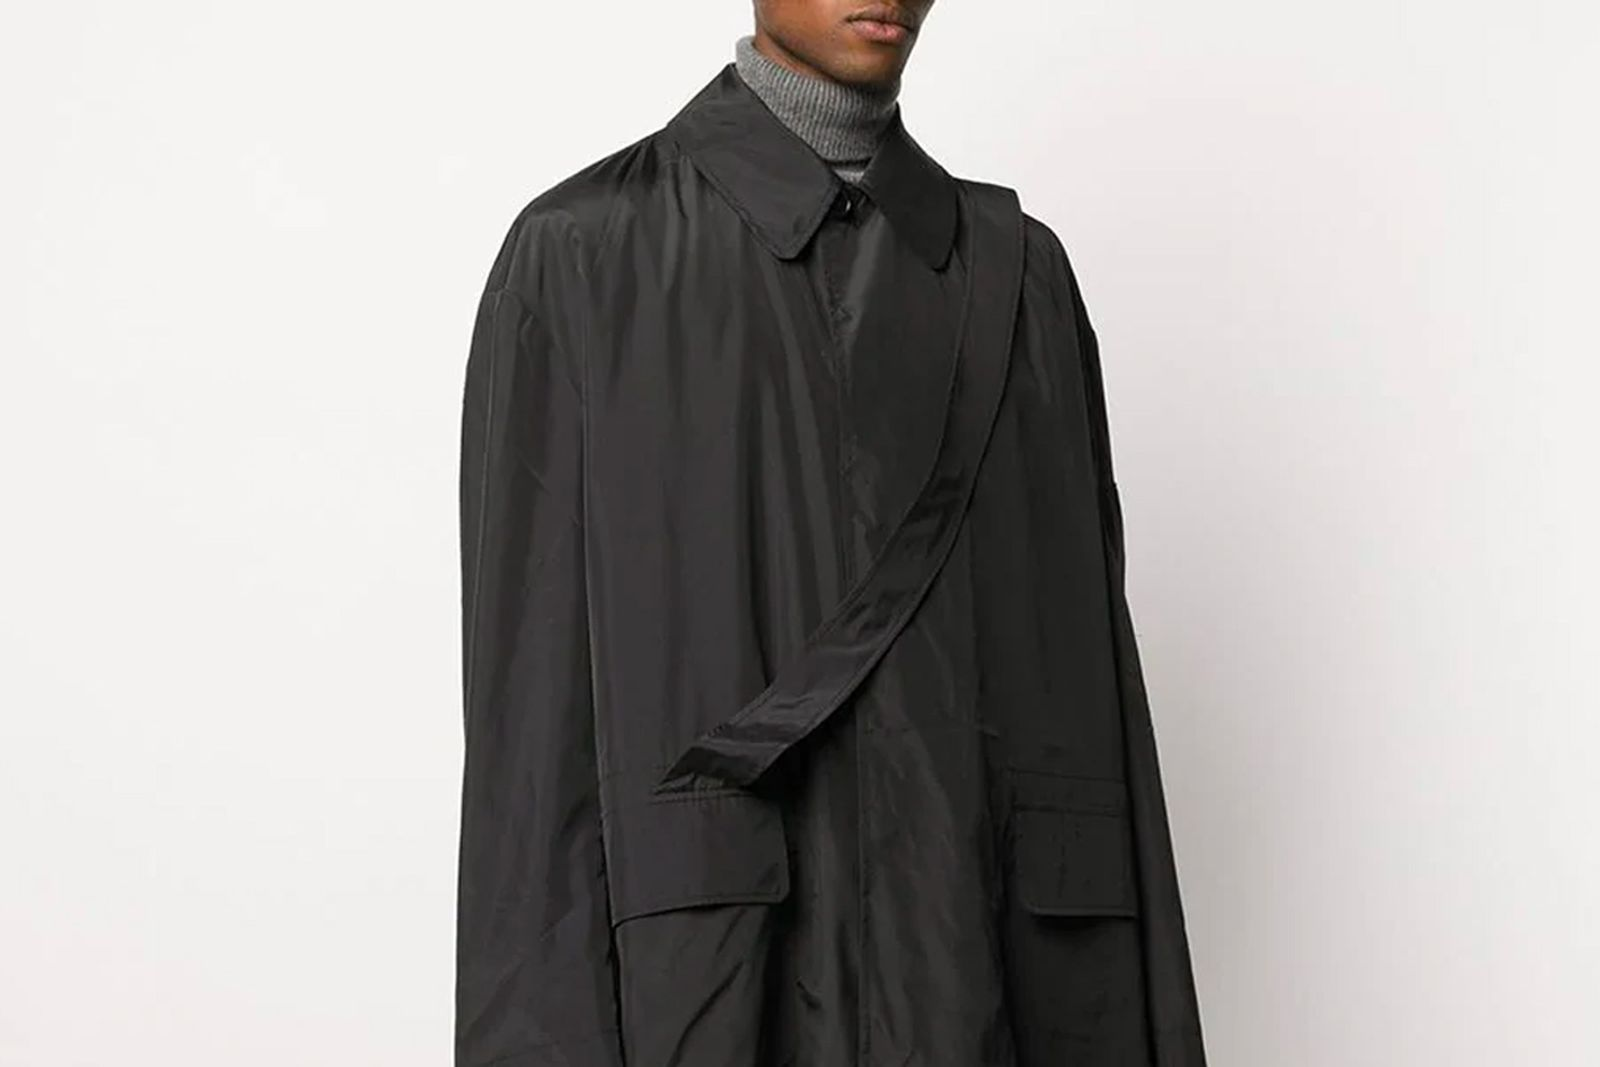 trench coats image